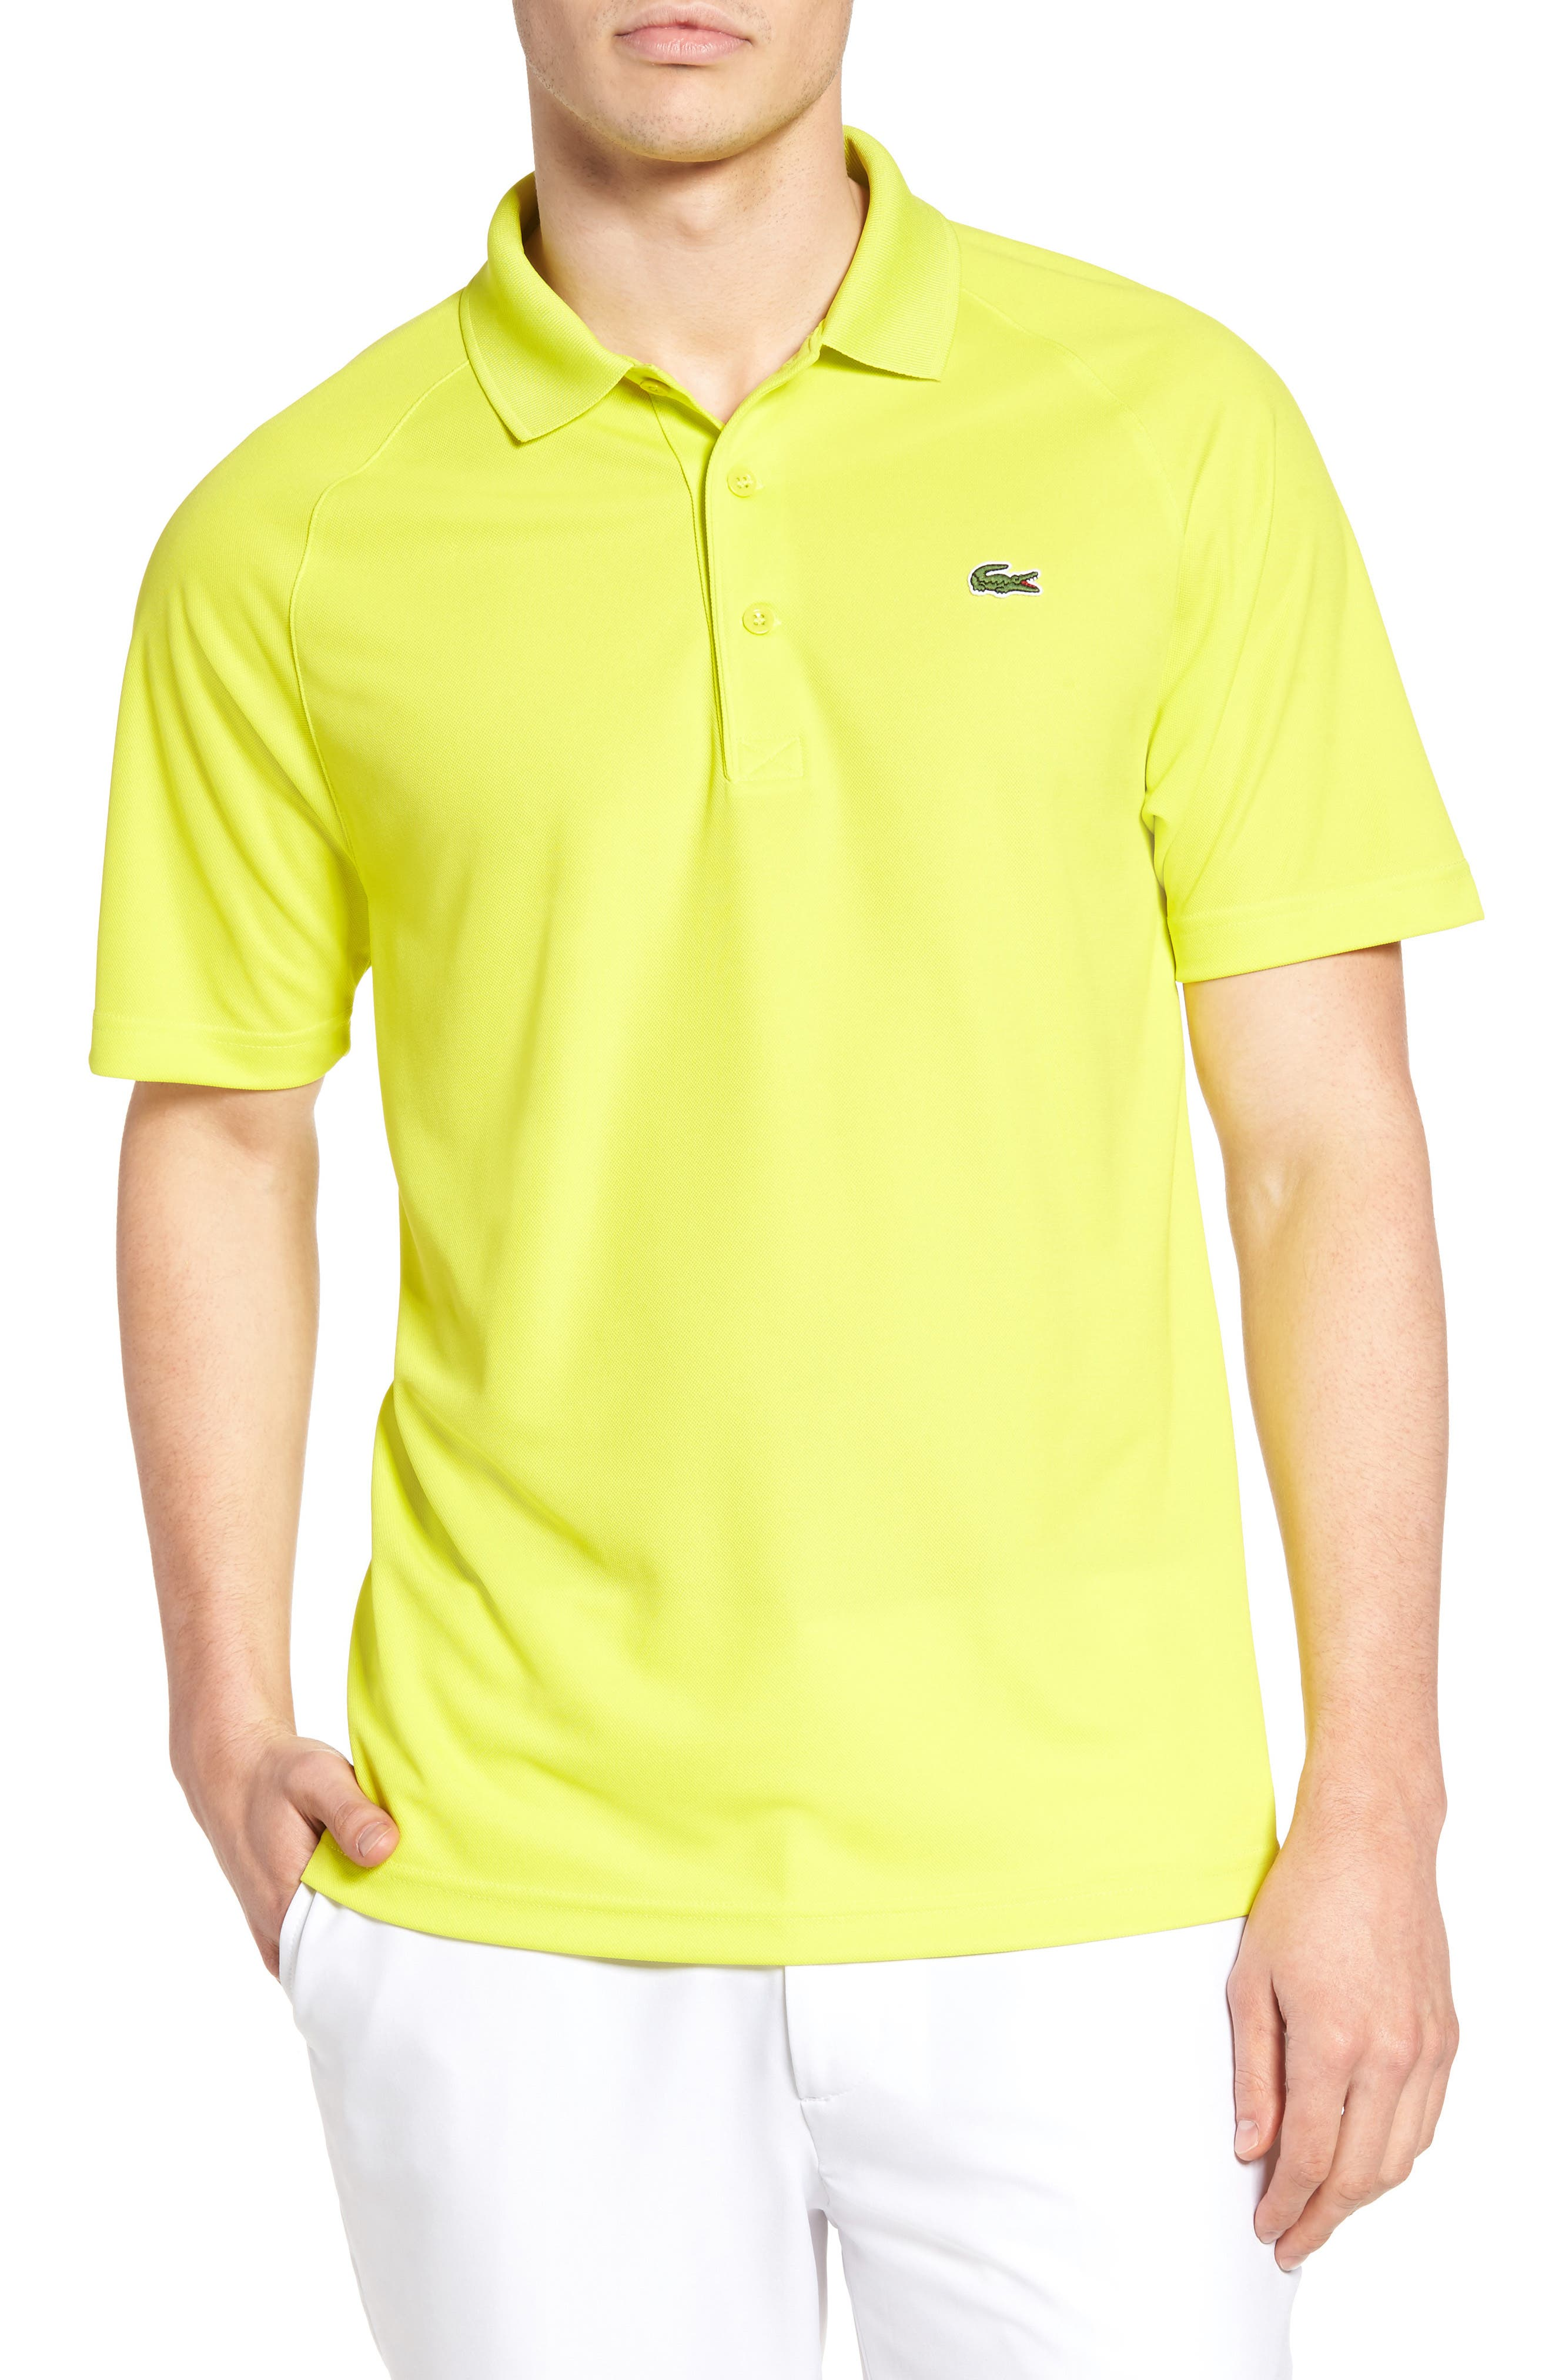 LACOSTE Sport Raglan Ultra Dry Performance Polo